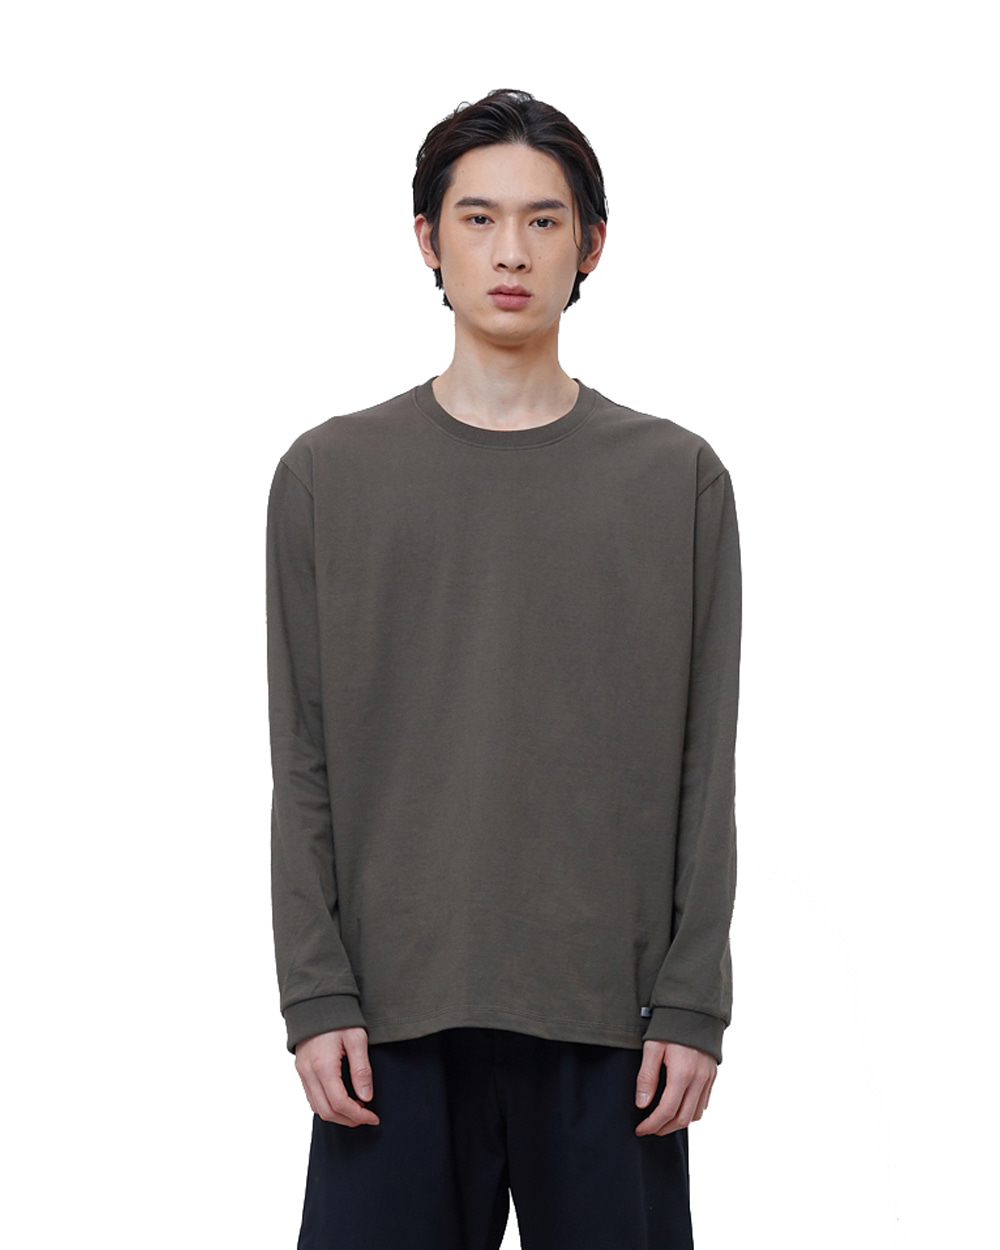 에이카화이트 FINEST COTTON LONG SLEEVE TEE (Olive)